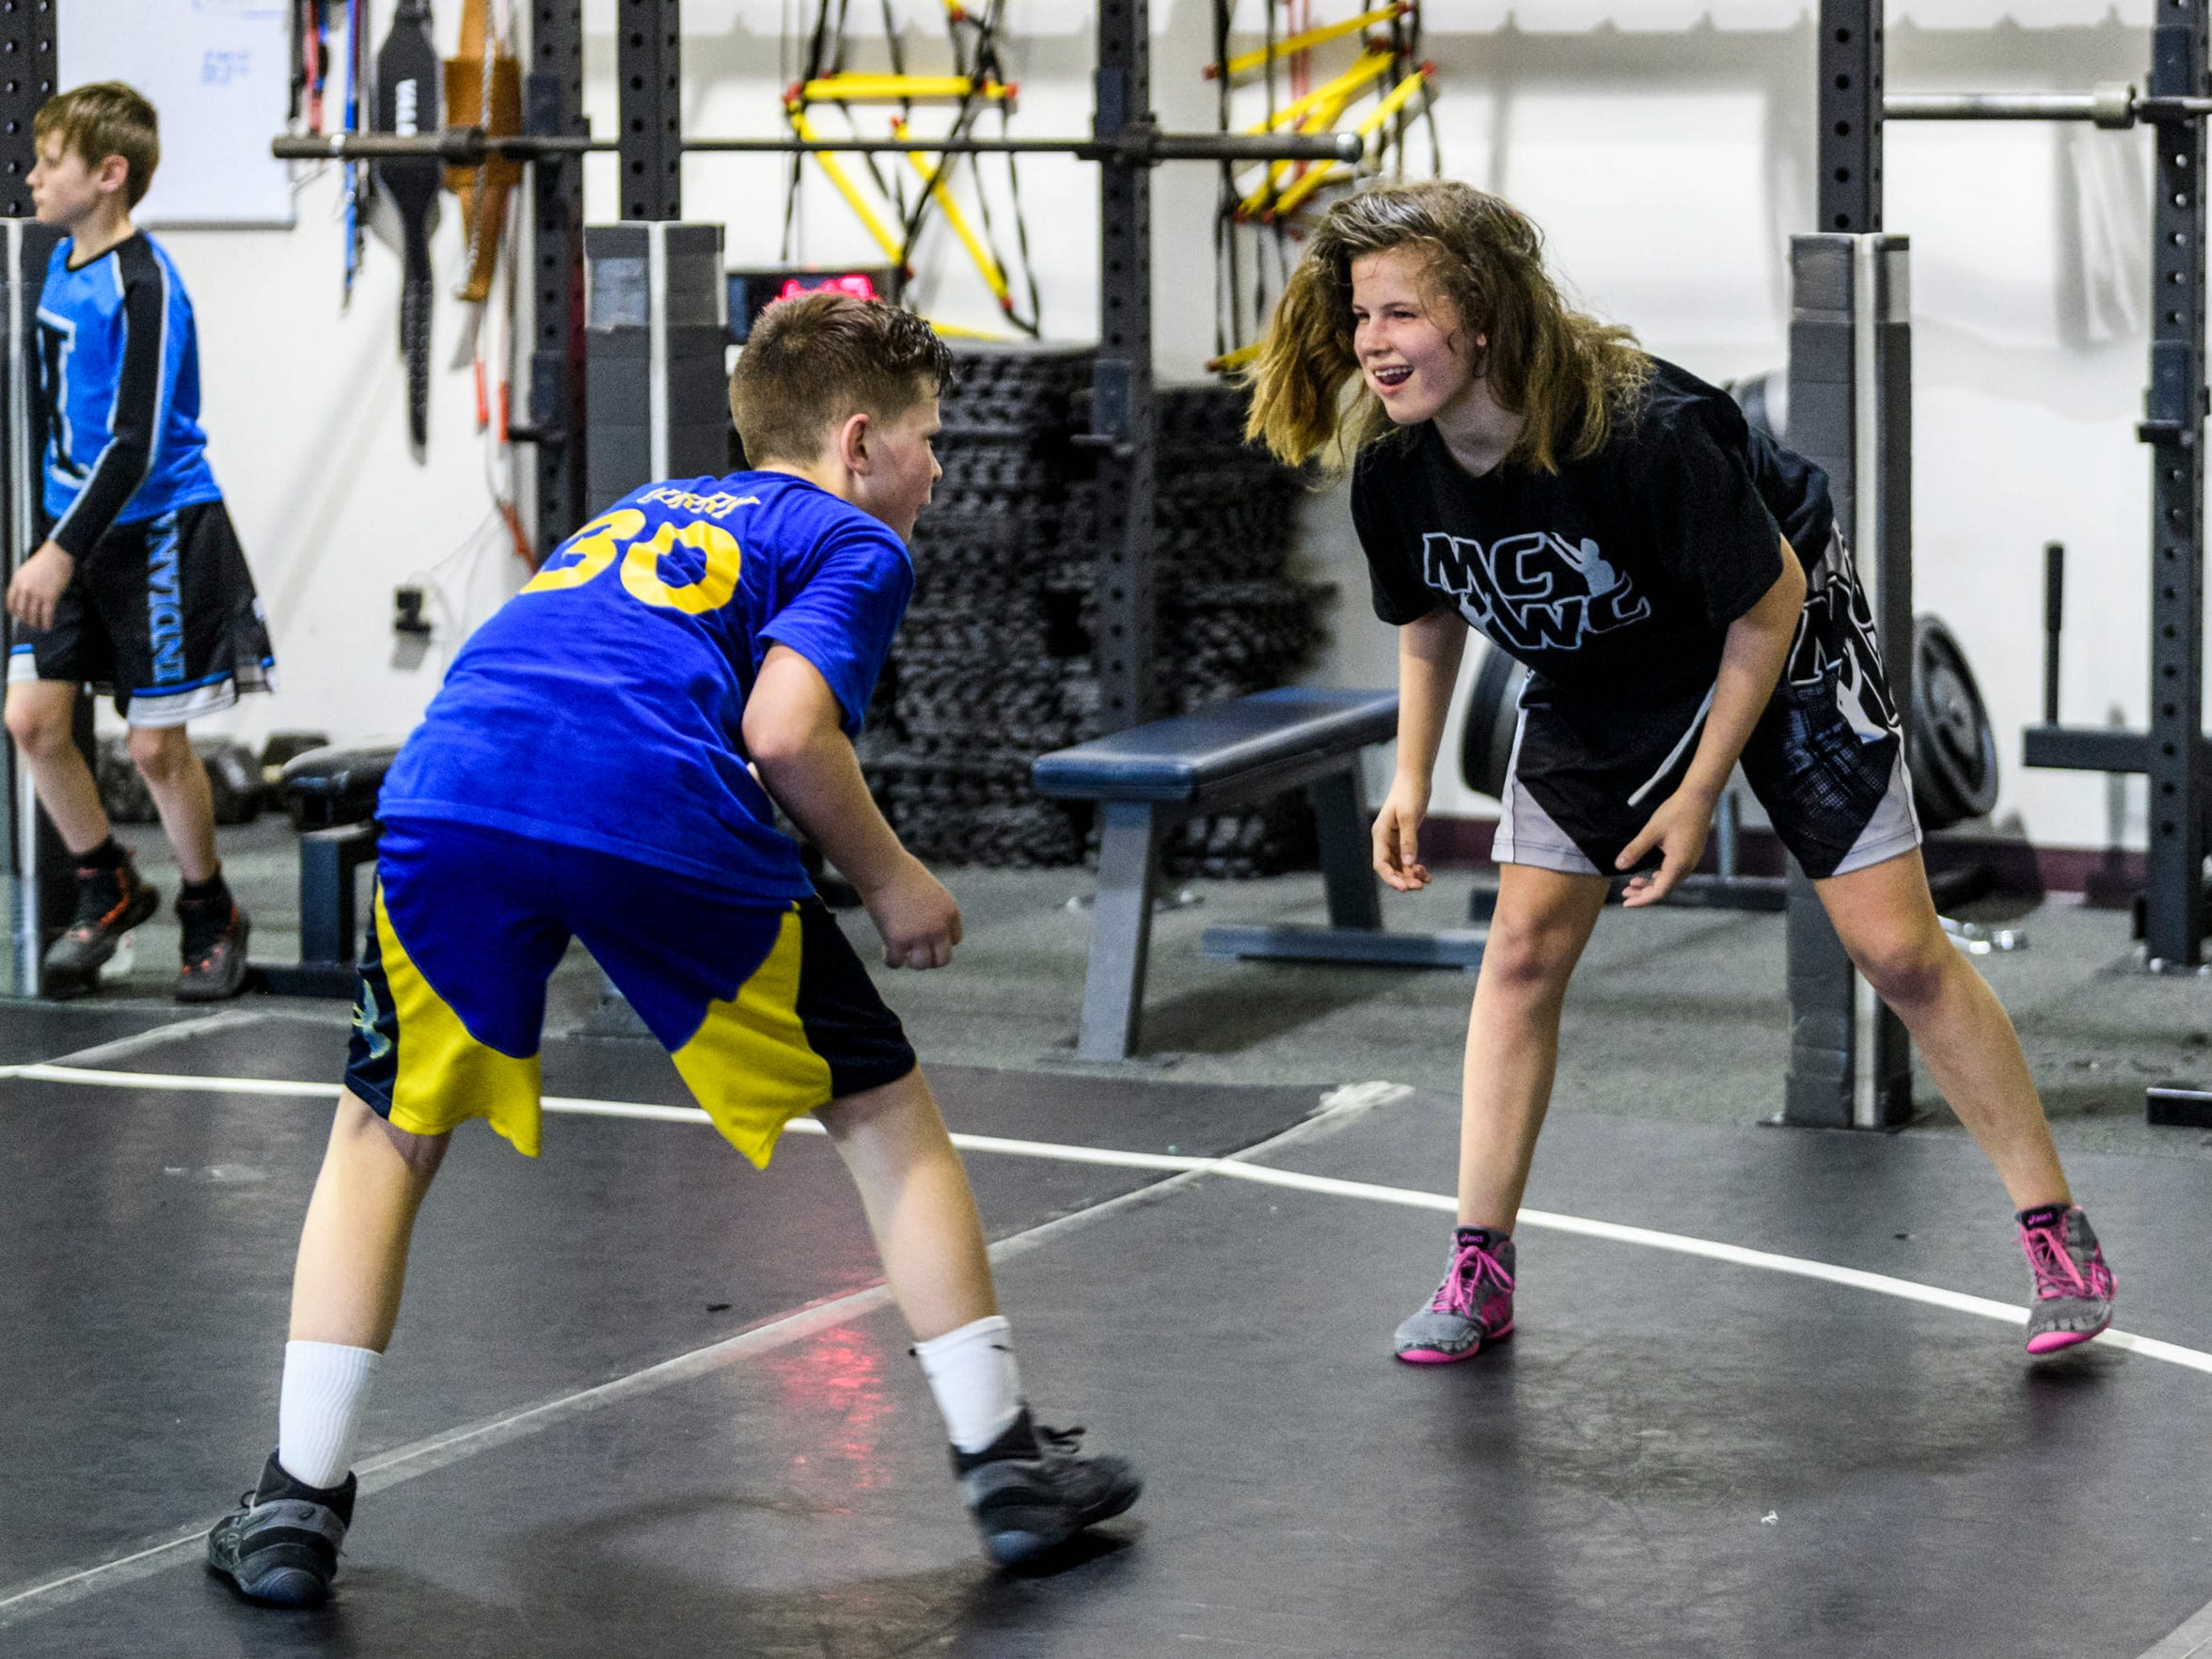 Kaylie Petersen, right, prepares to wrestle her frequent practice partner 12-year-old Maddux Ranson, right, at Maurer Coughlin Wrestling Club in Evansville on a recent Tuesday evening. She's been attending practices and receiving coaching at MCWC since 2014 and is often the only girl on the wrestling mat.